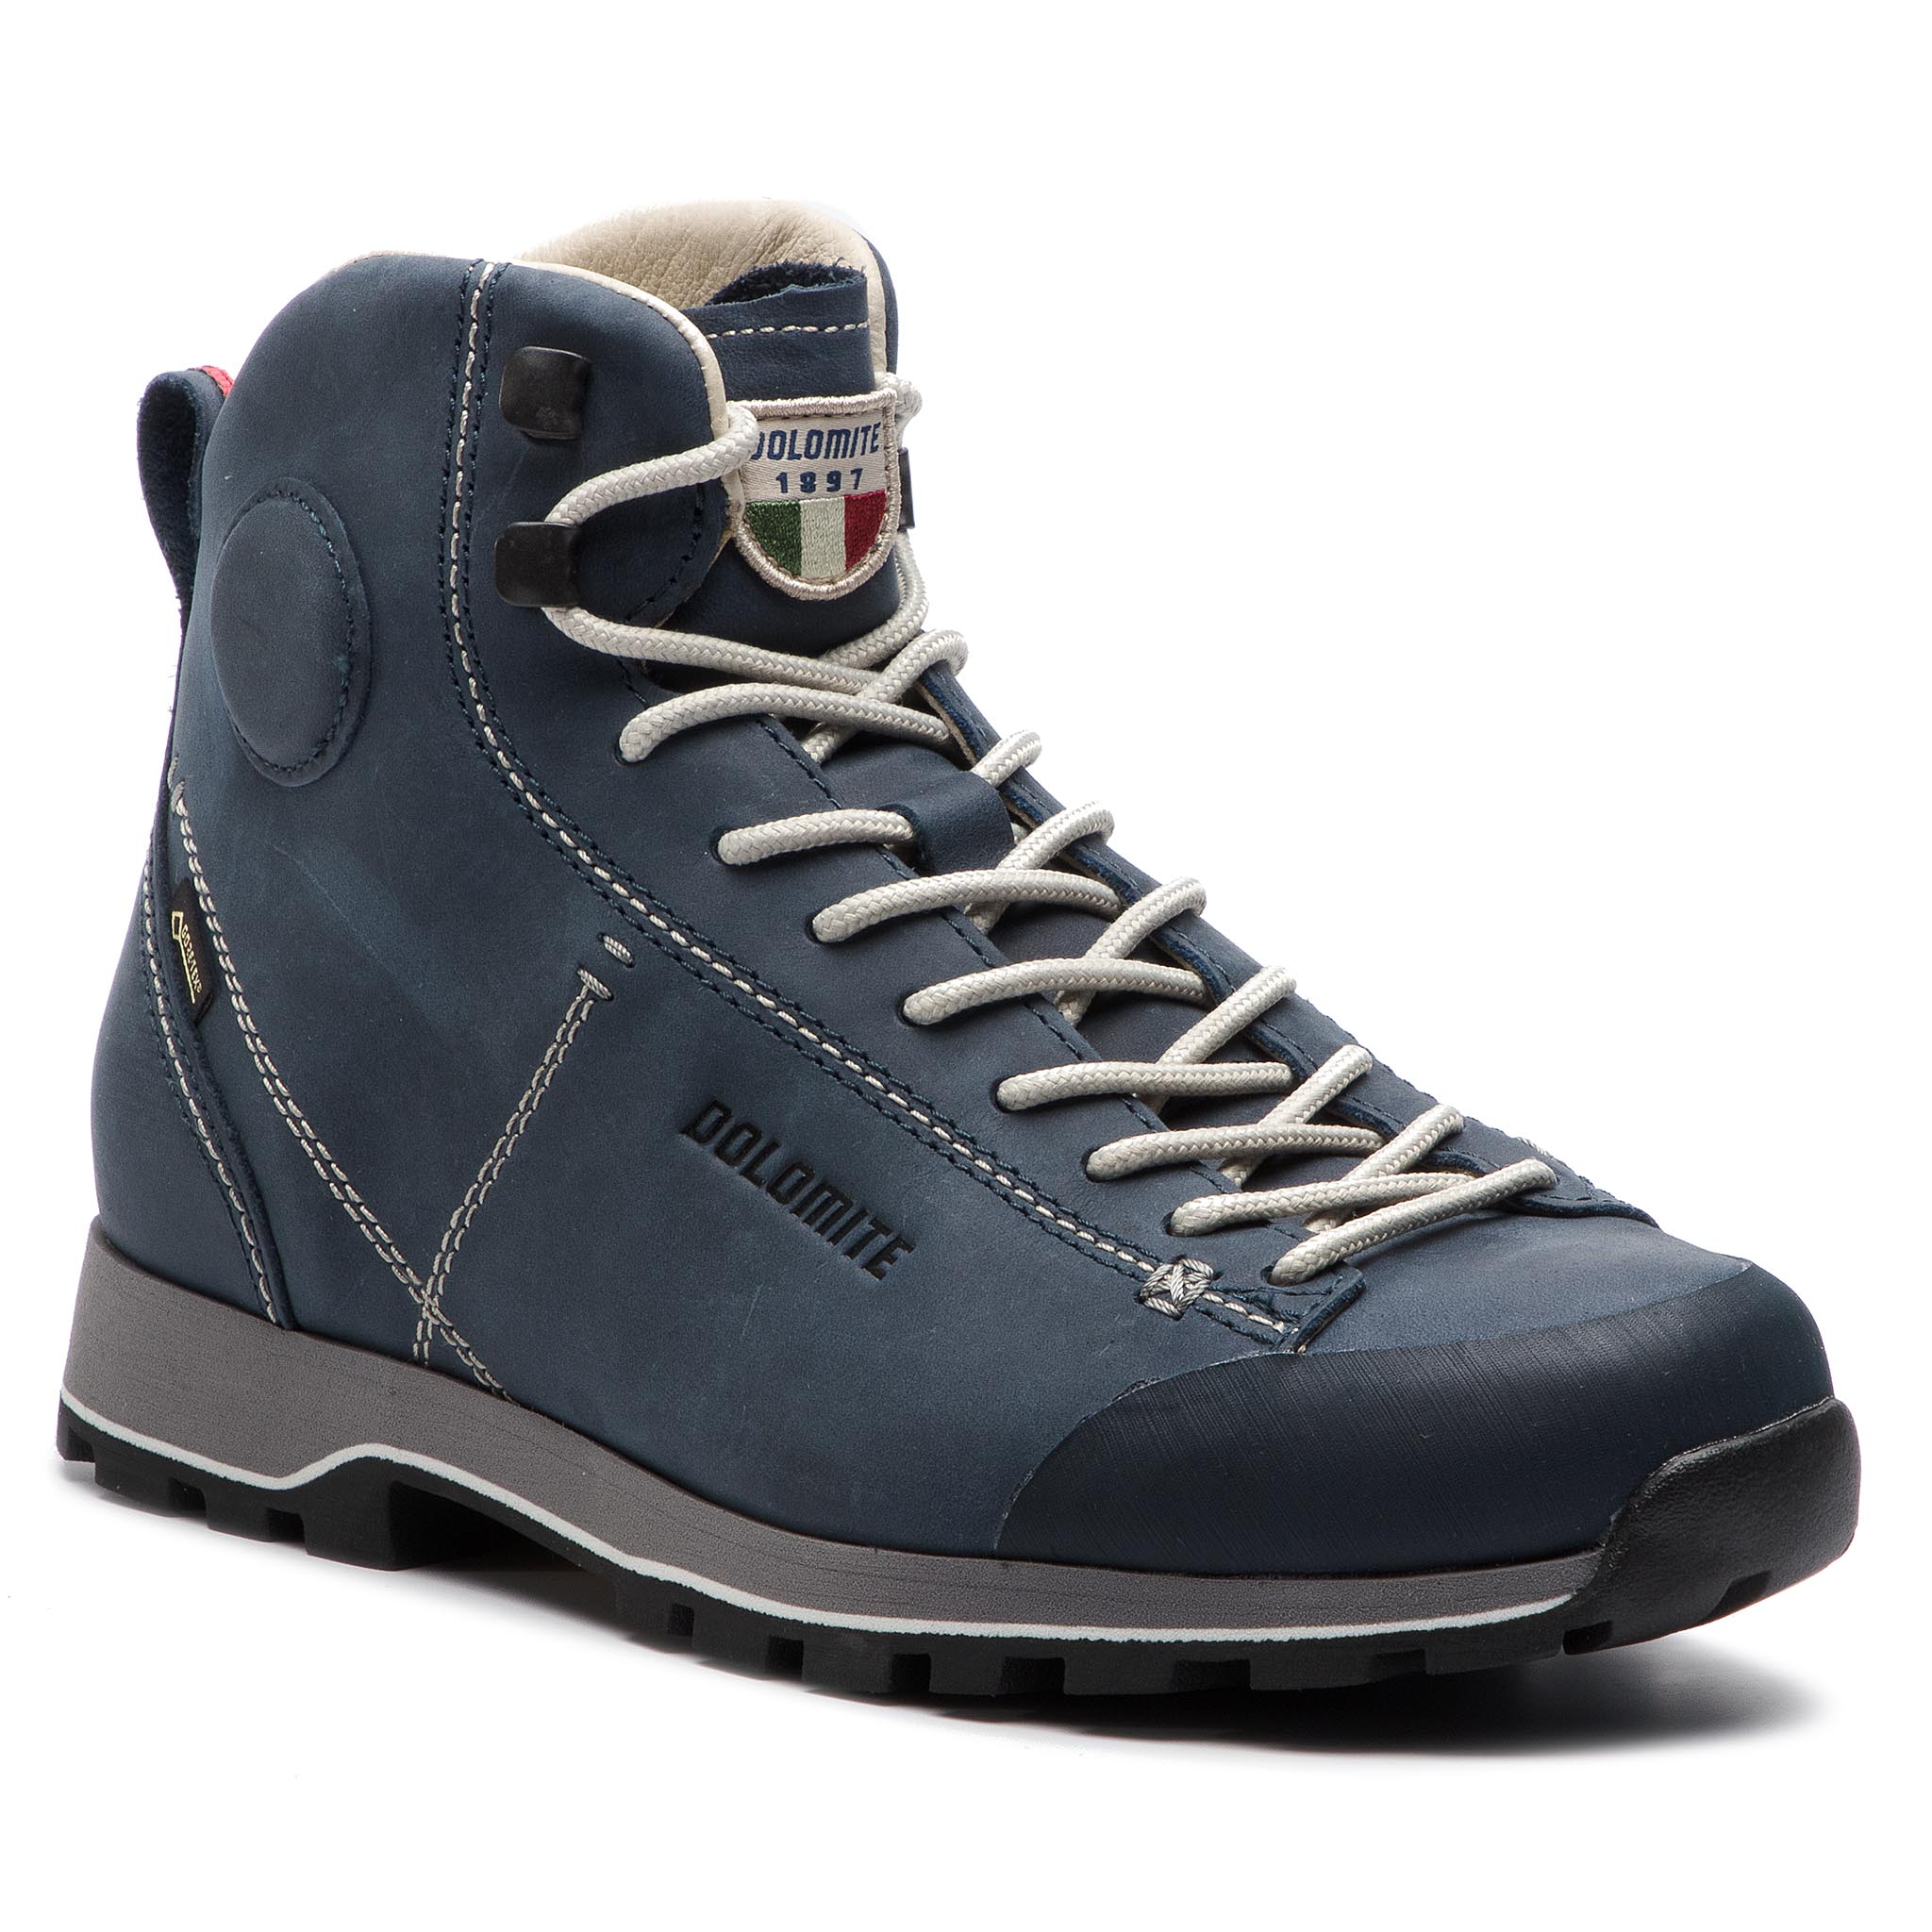 Trekkings Dolomite - Cinquantaquattro High Fg Gtx Gore-Tex 247958-0160011 Blue Navy imagine epantofi.ro 2021